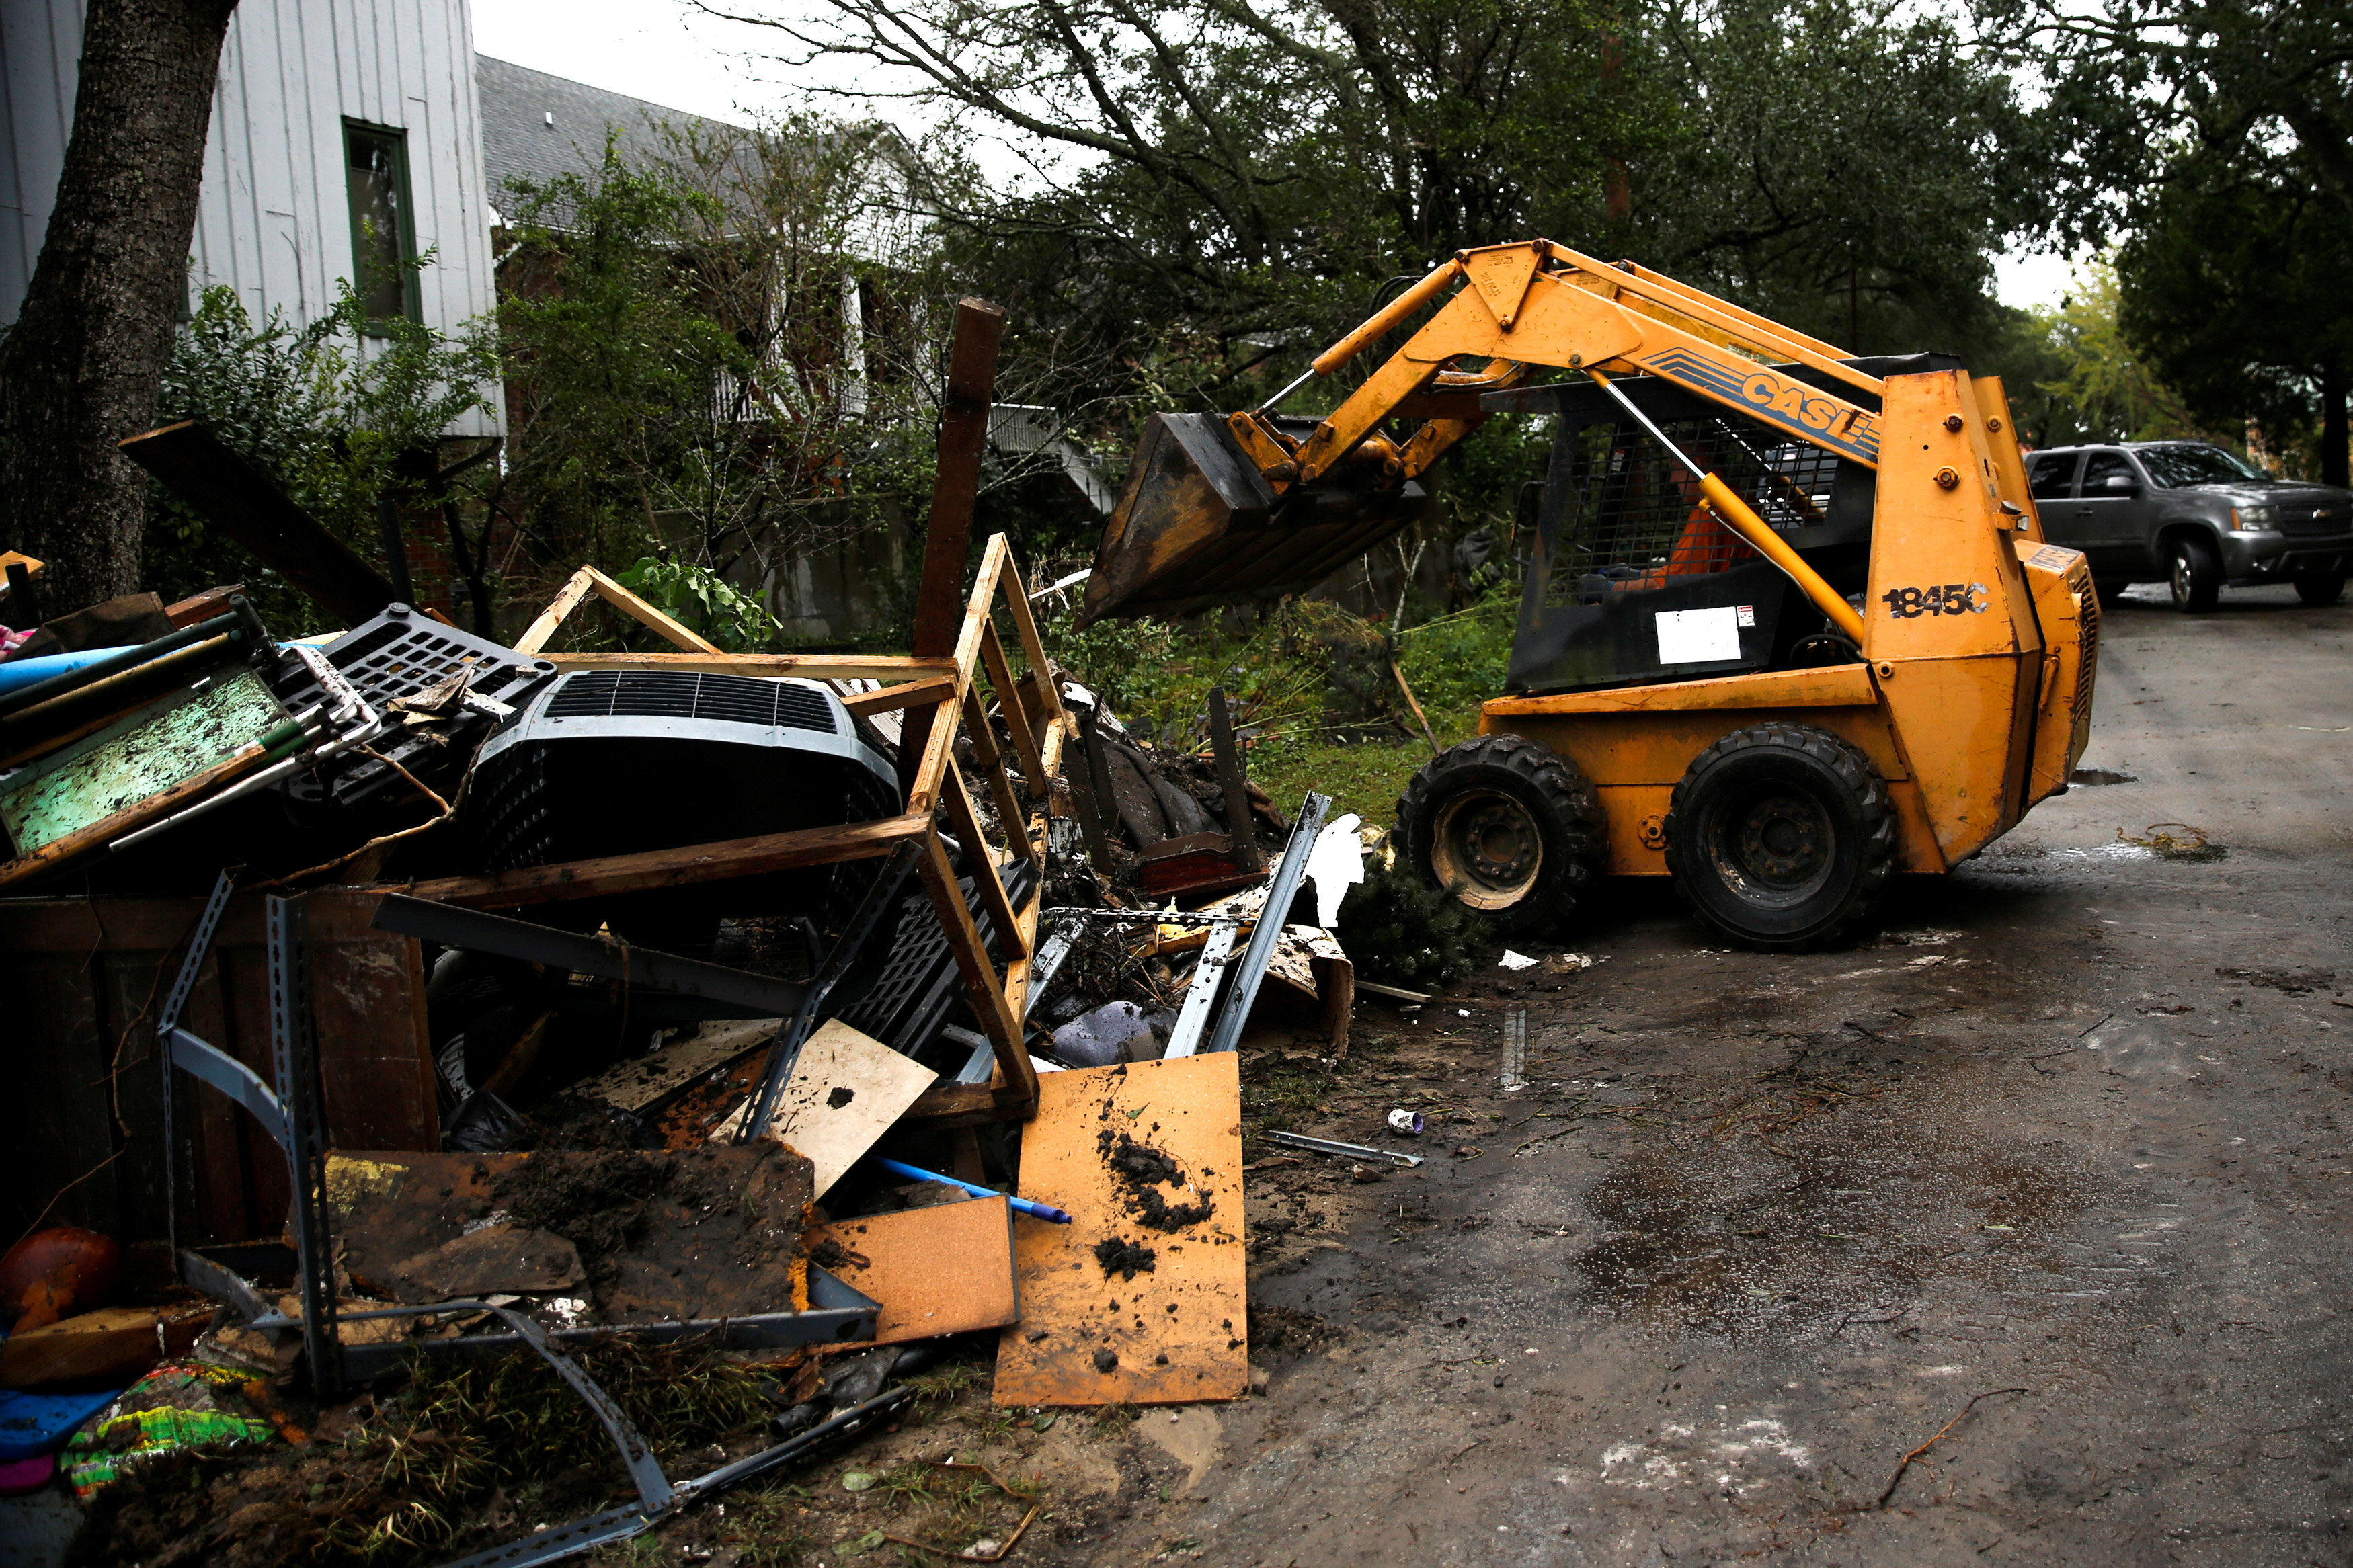 People use a backhoe to clean their house after Hurricane Florence in New Bern